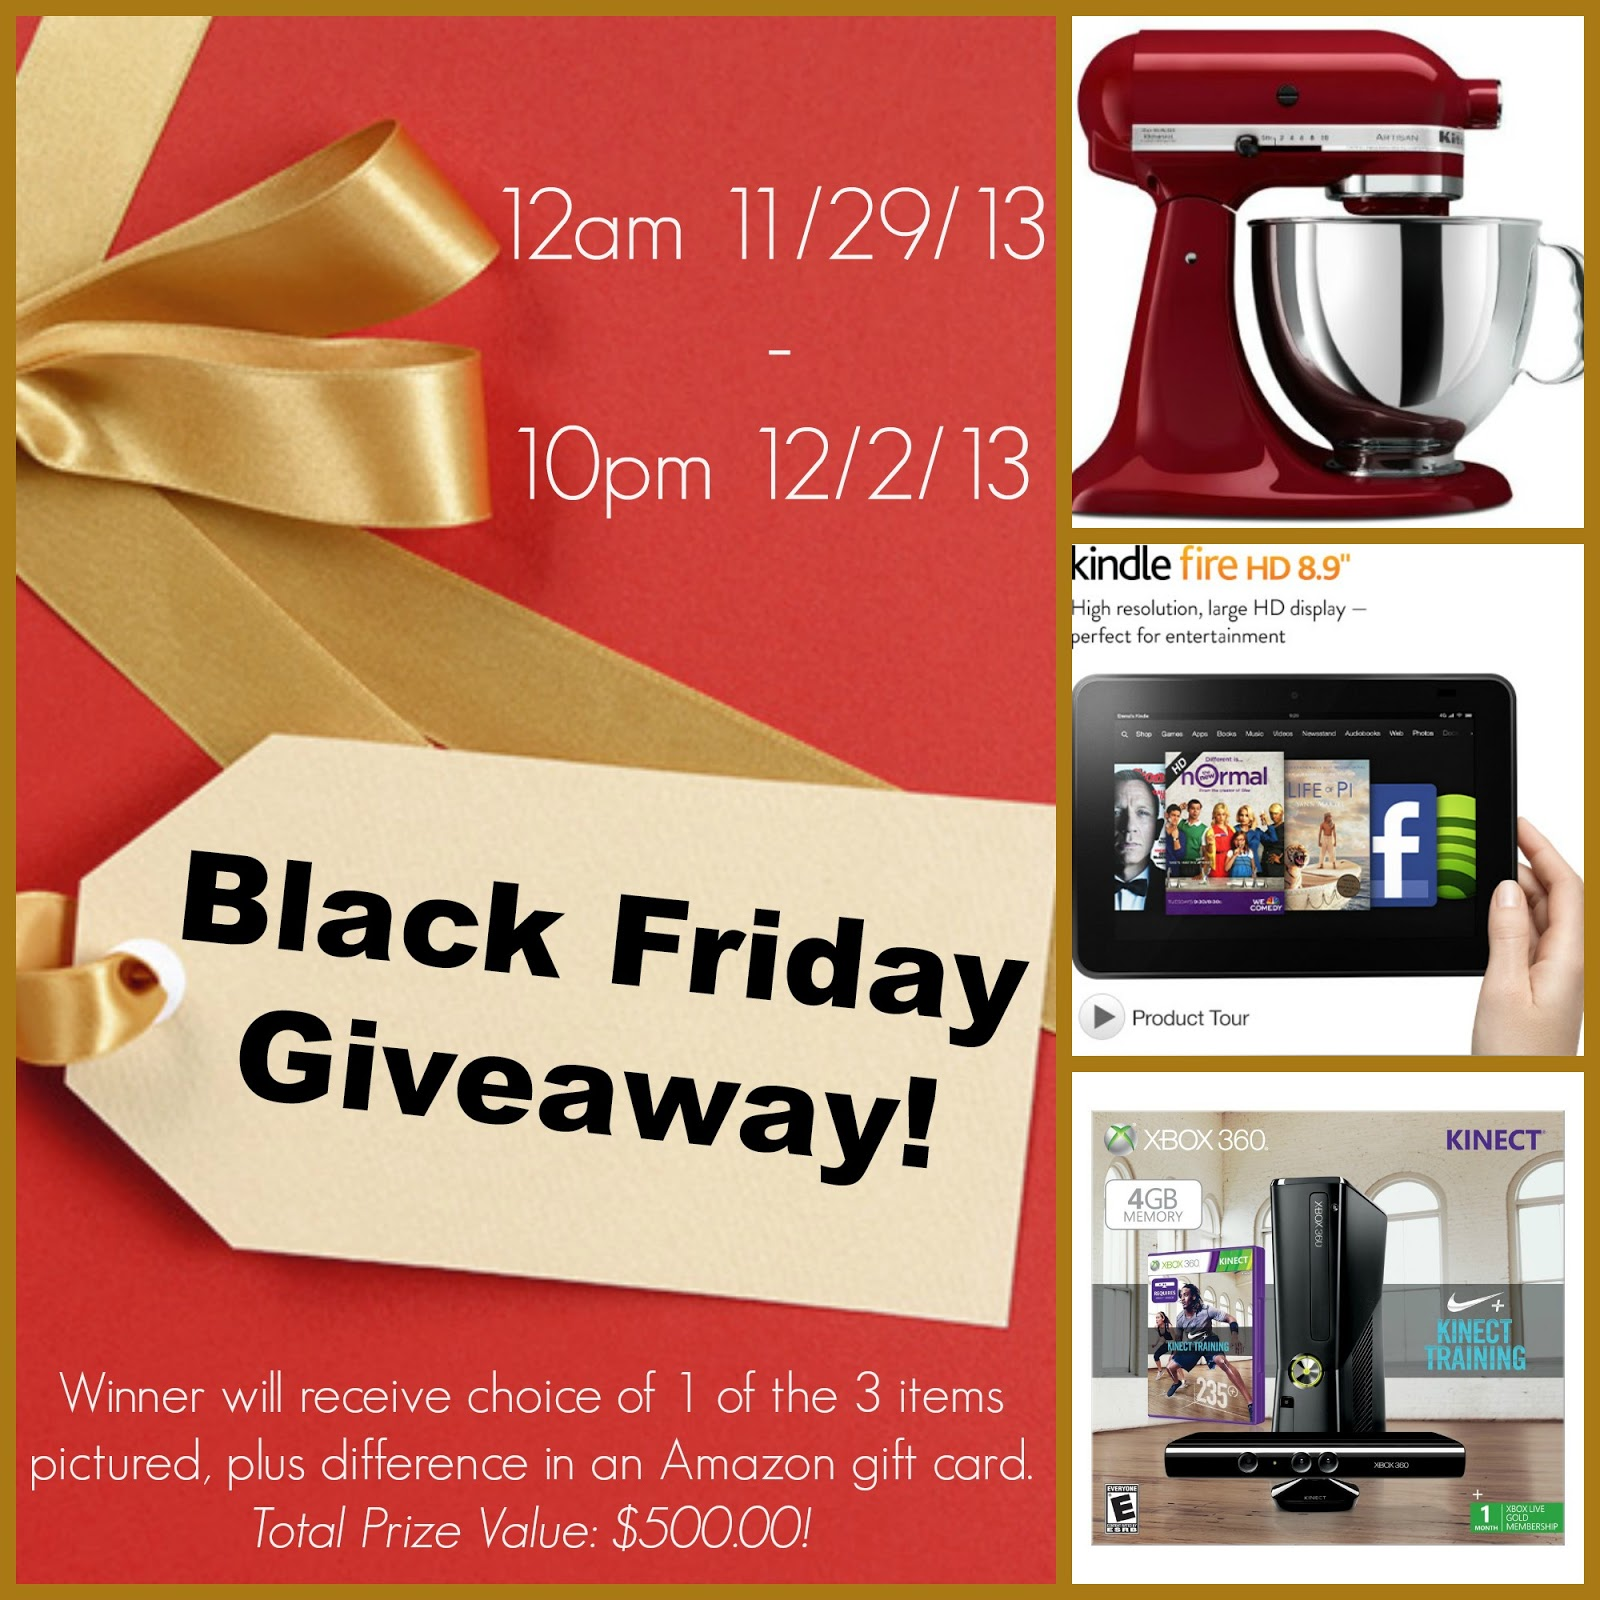 Kitchenaid Black Friday 2016 Amazon: $500 Black Friday Giveaway